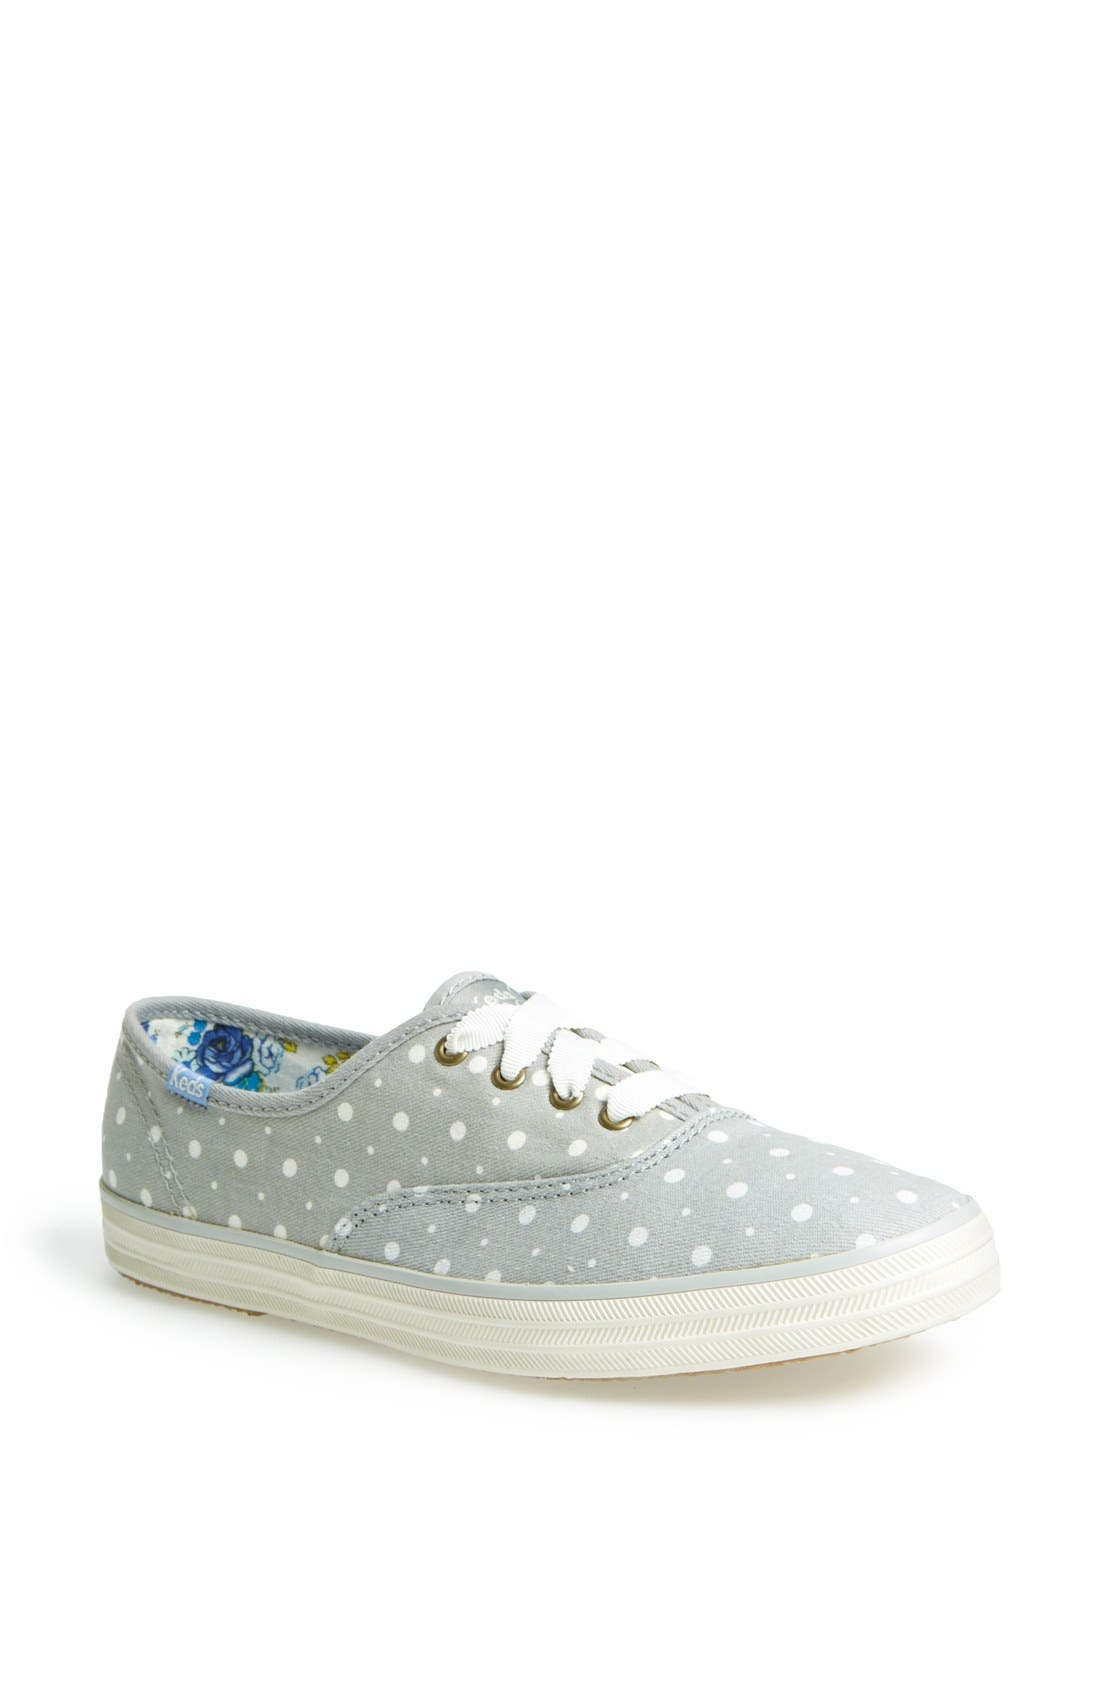 Alternate Image 1 Selected - Keds® Taylor Swift Polka Dot Sneaker (Women)